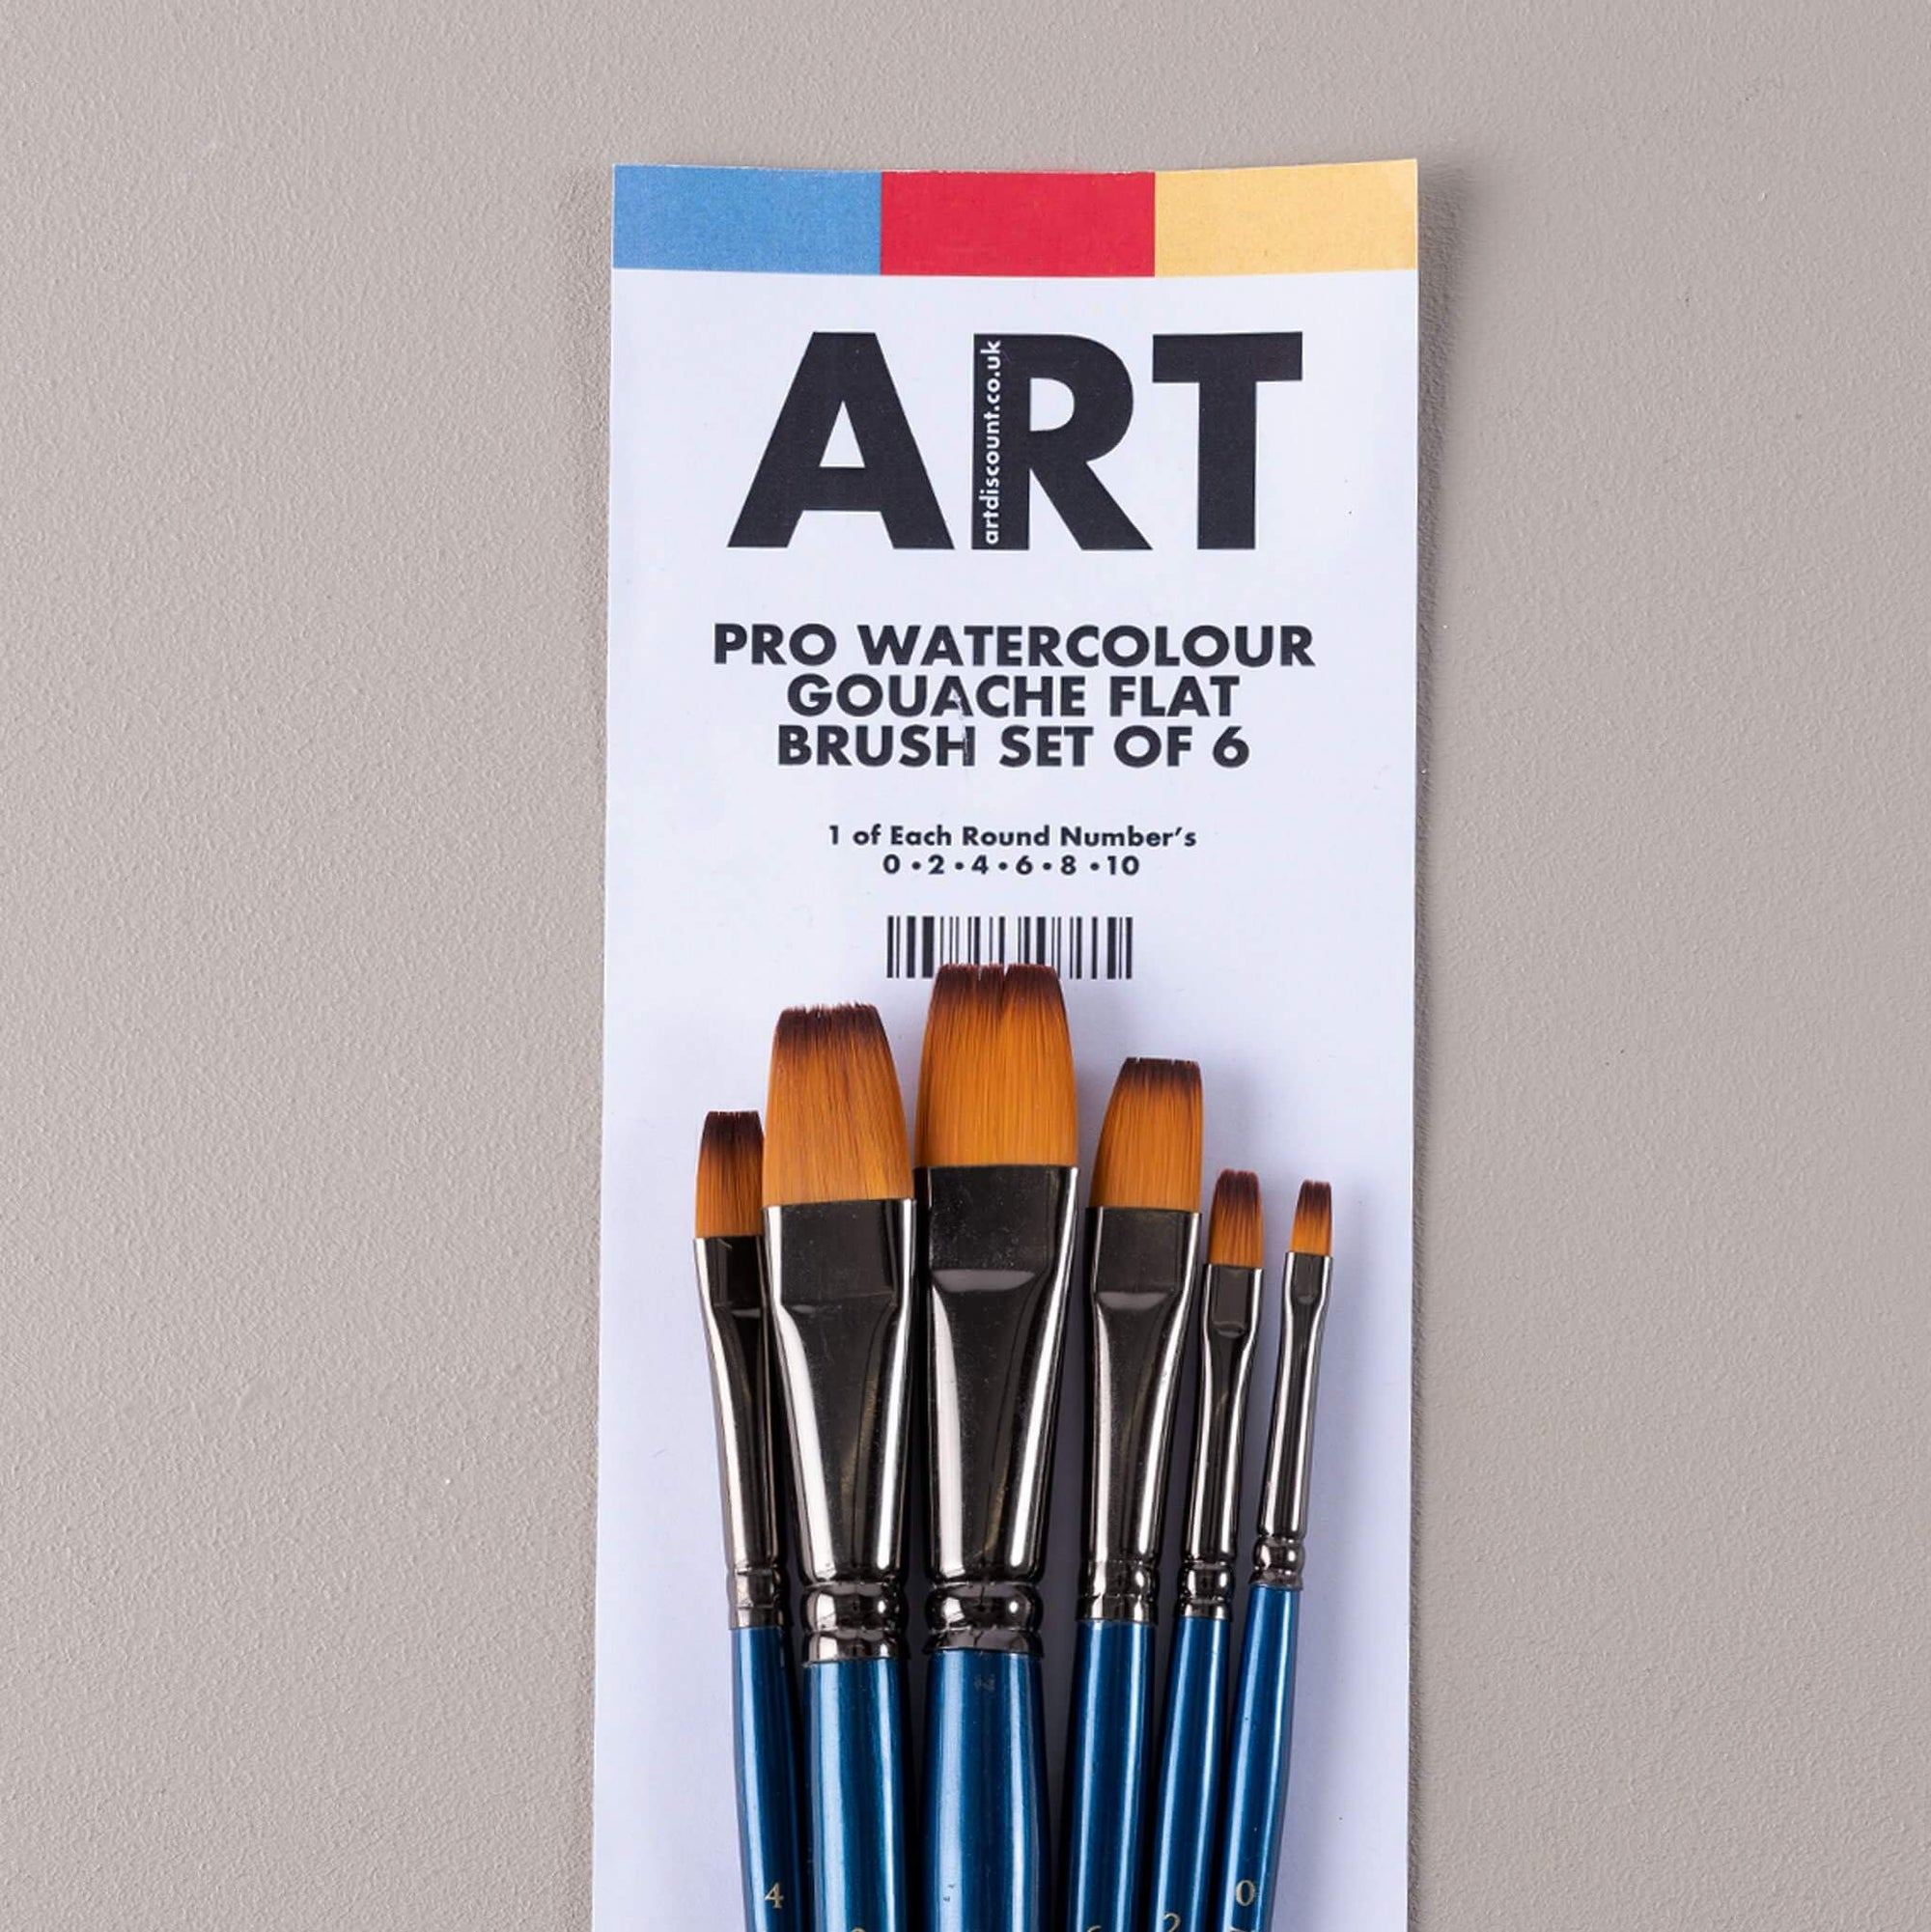 ARTdiscount Pro Watercolour/Gouache Flat Brush Set of 6